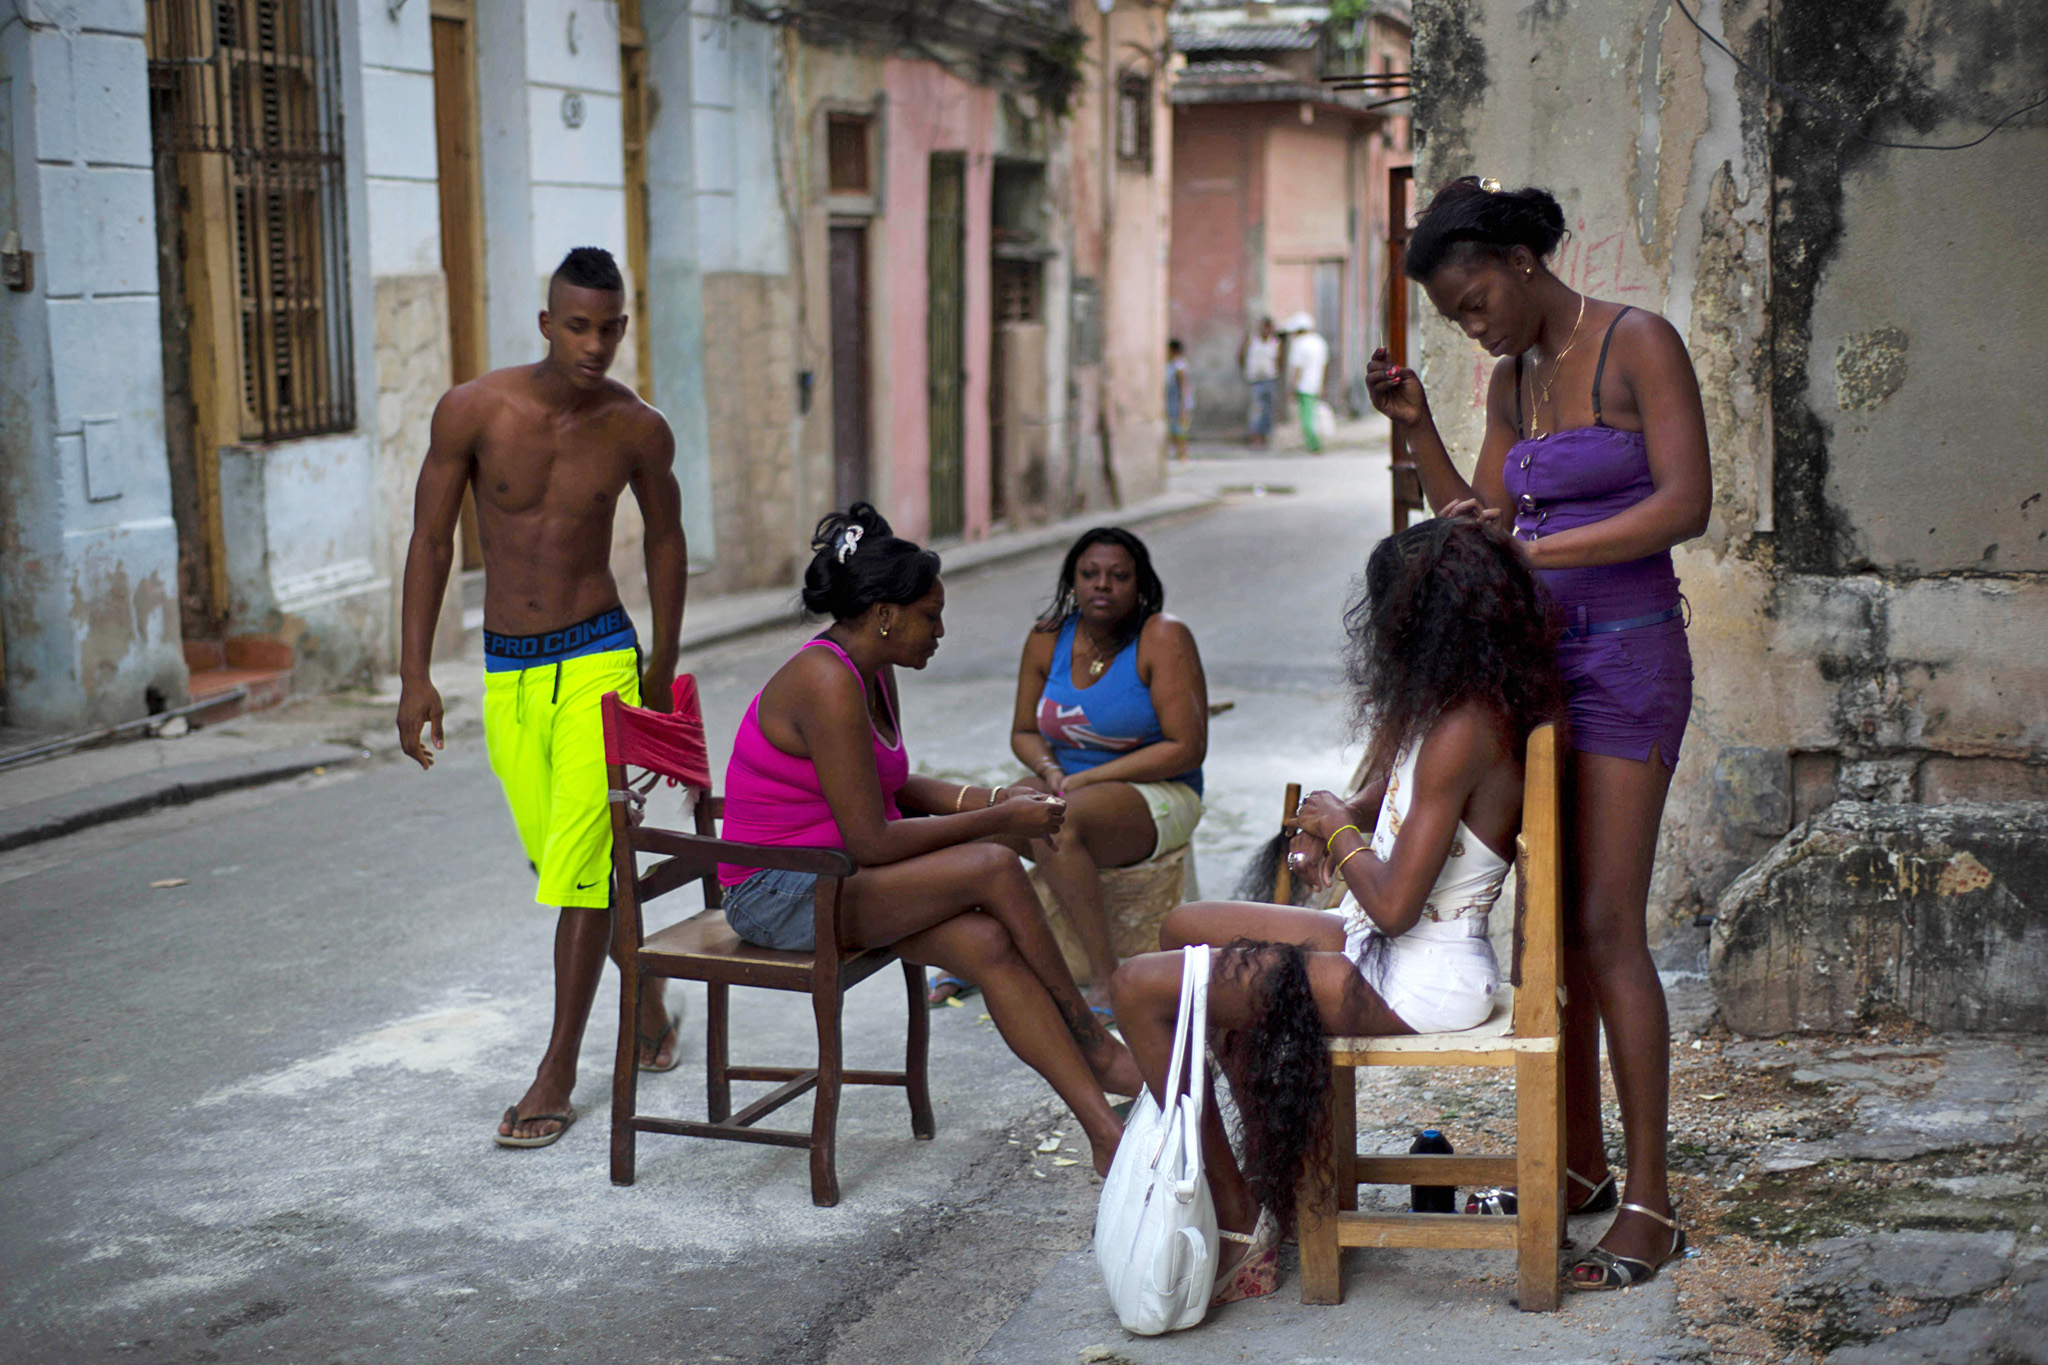 Hairdresser Lisandra works on a woman's extensions as others wait their turn in Old Havana, Cuba, Tuesday, Jan. 13, 2015. Lisandra attends her clients on the sidewalk outside her home. (AP Photo/Ramon Espinosa)